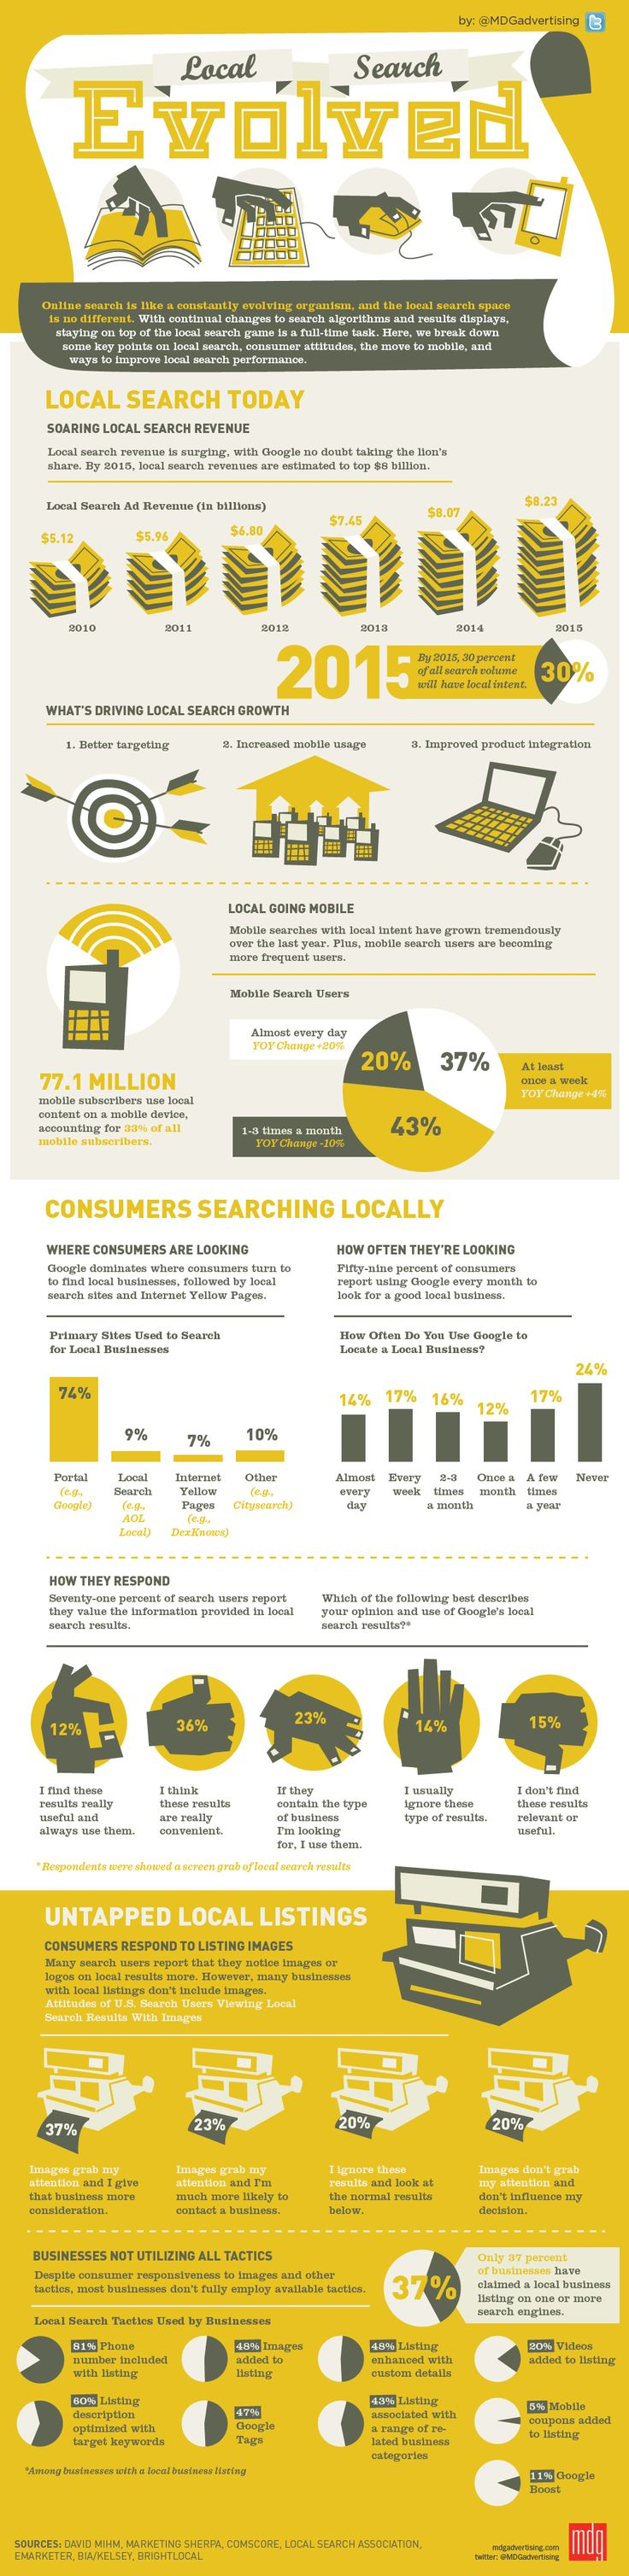 """Local Search Evolved - Local search is big business and big opportunity. How big? The folks at MDG Advertising have produced a """"Local Search Evolved"""" infographic with statistics and info about the subject that you might find interesting."""